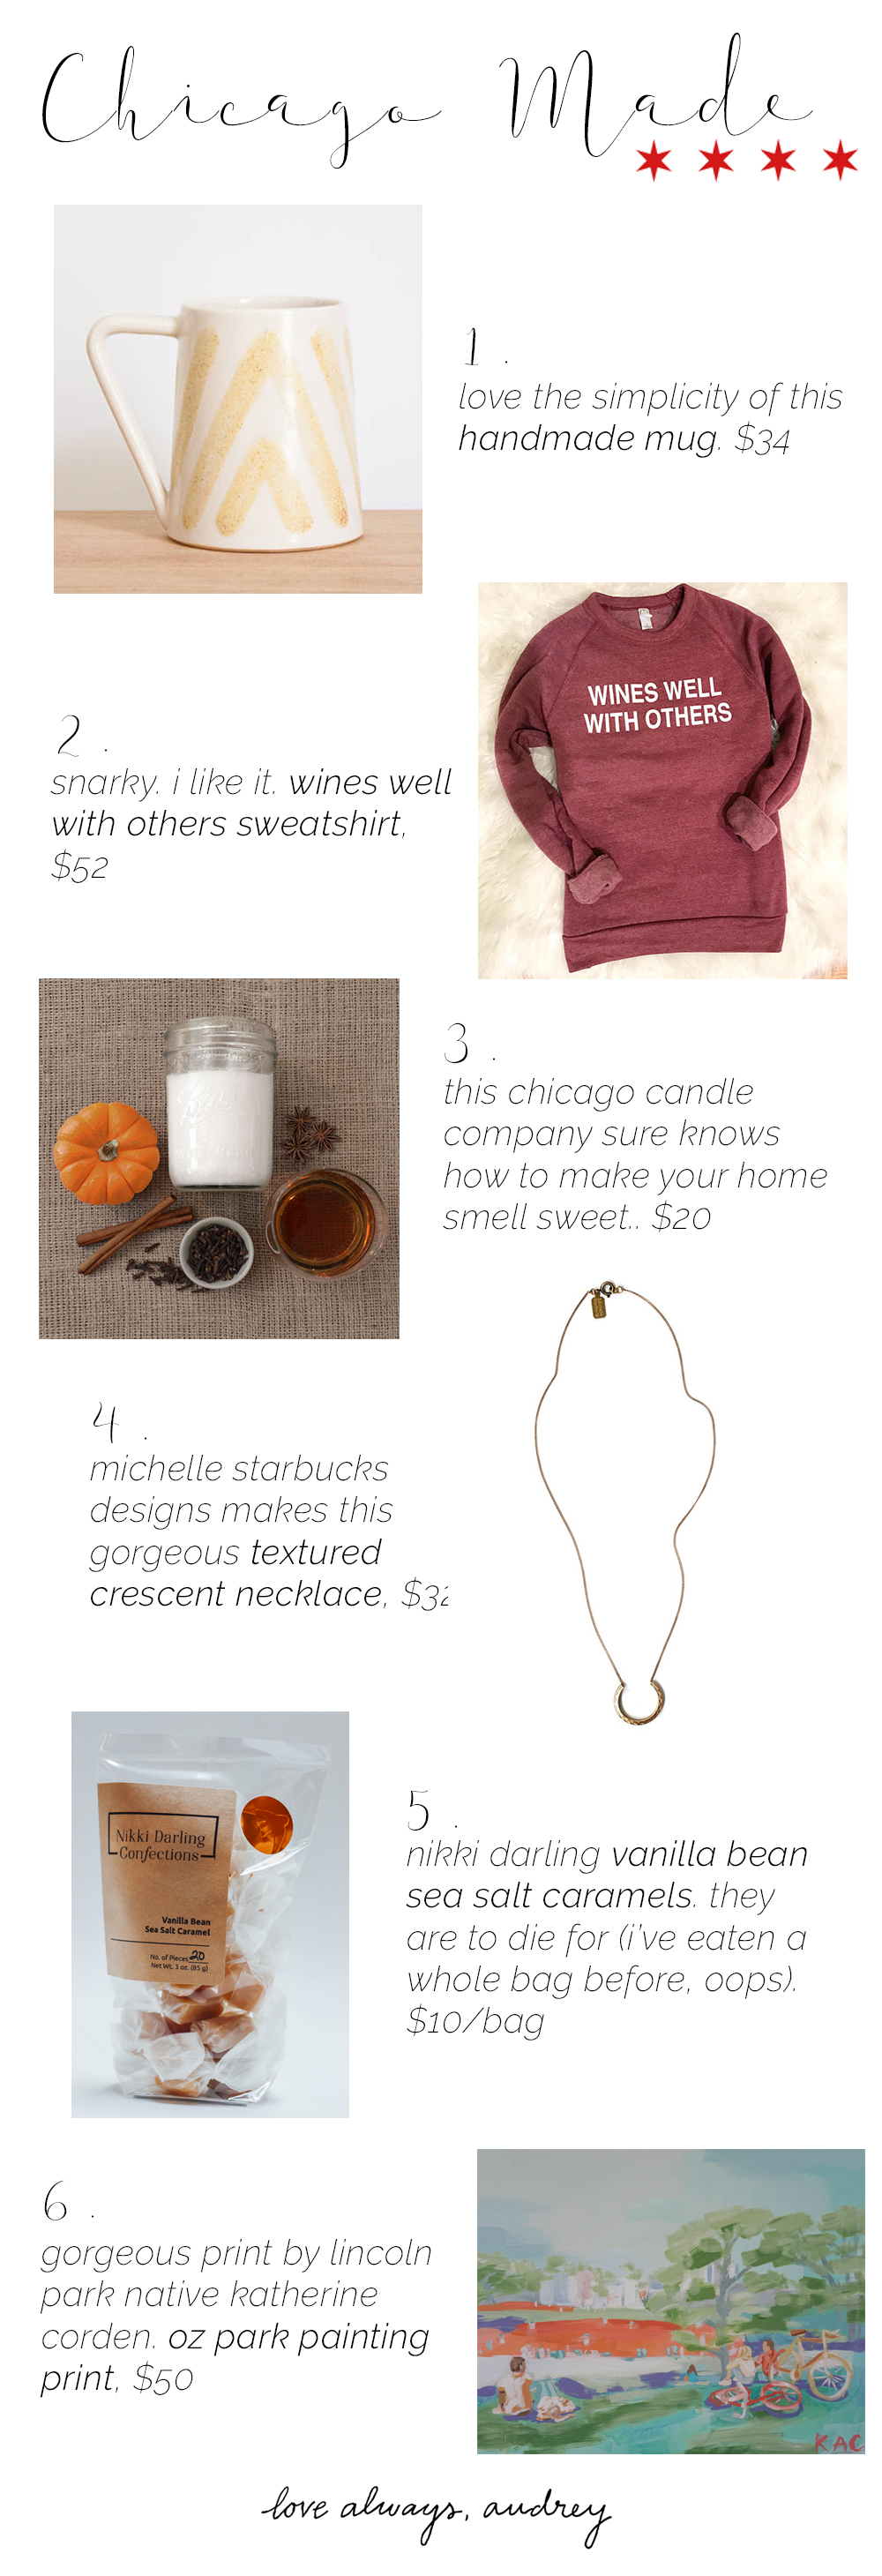 Chicago Local Handmade Gift Ideas